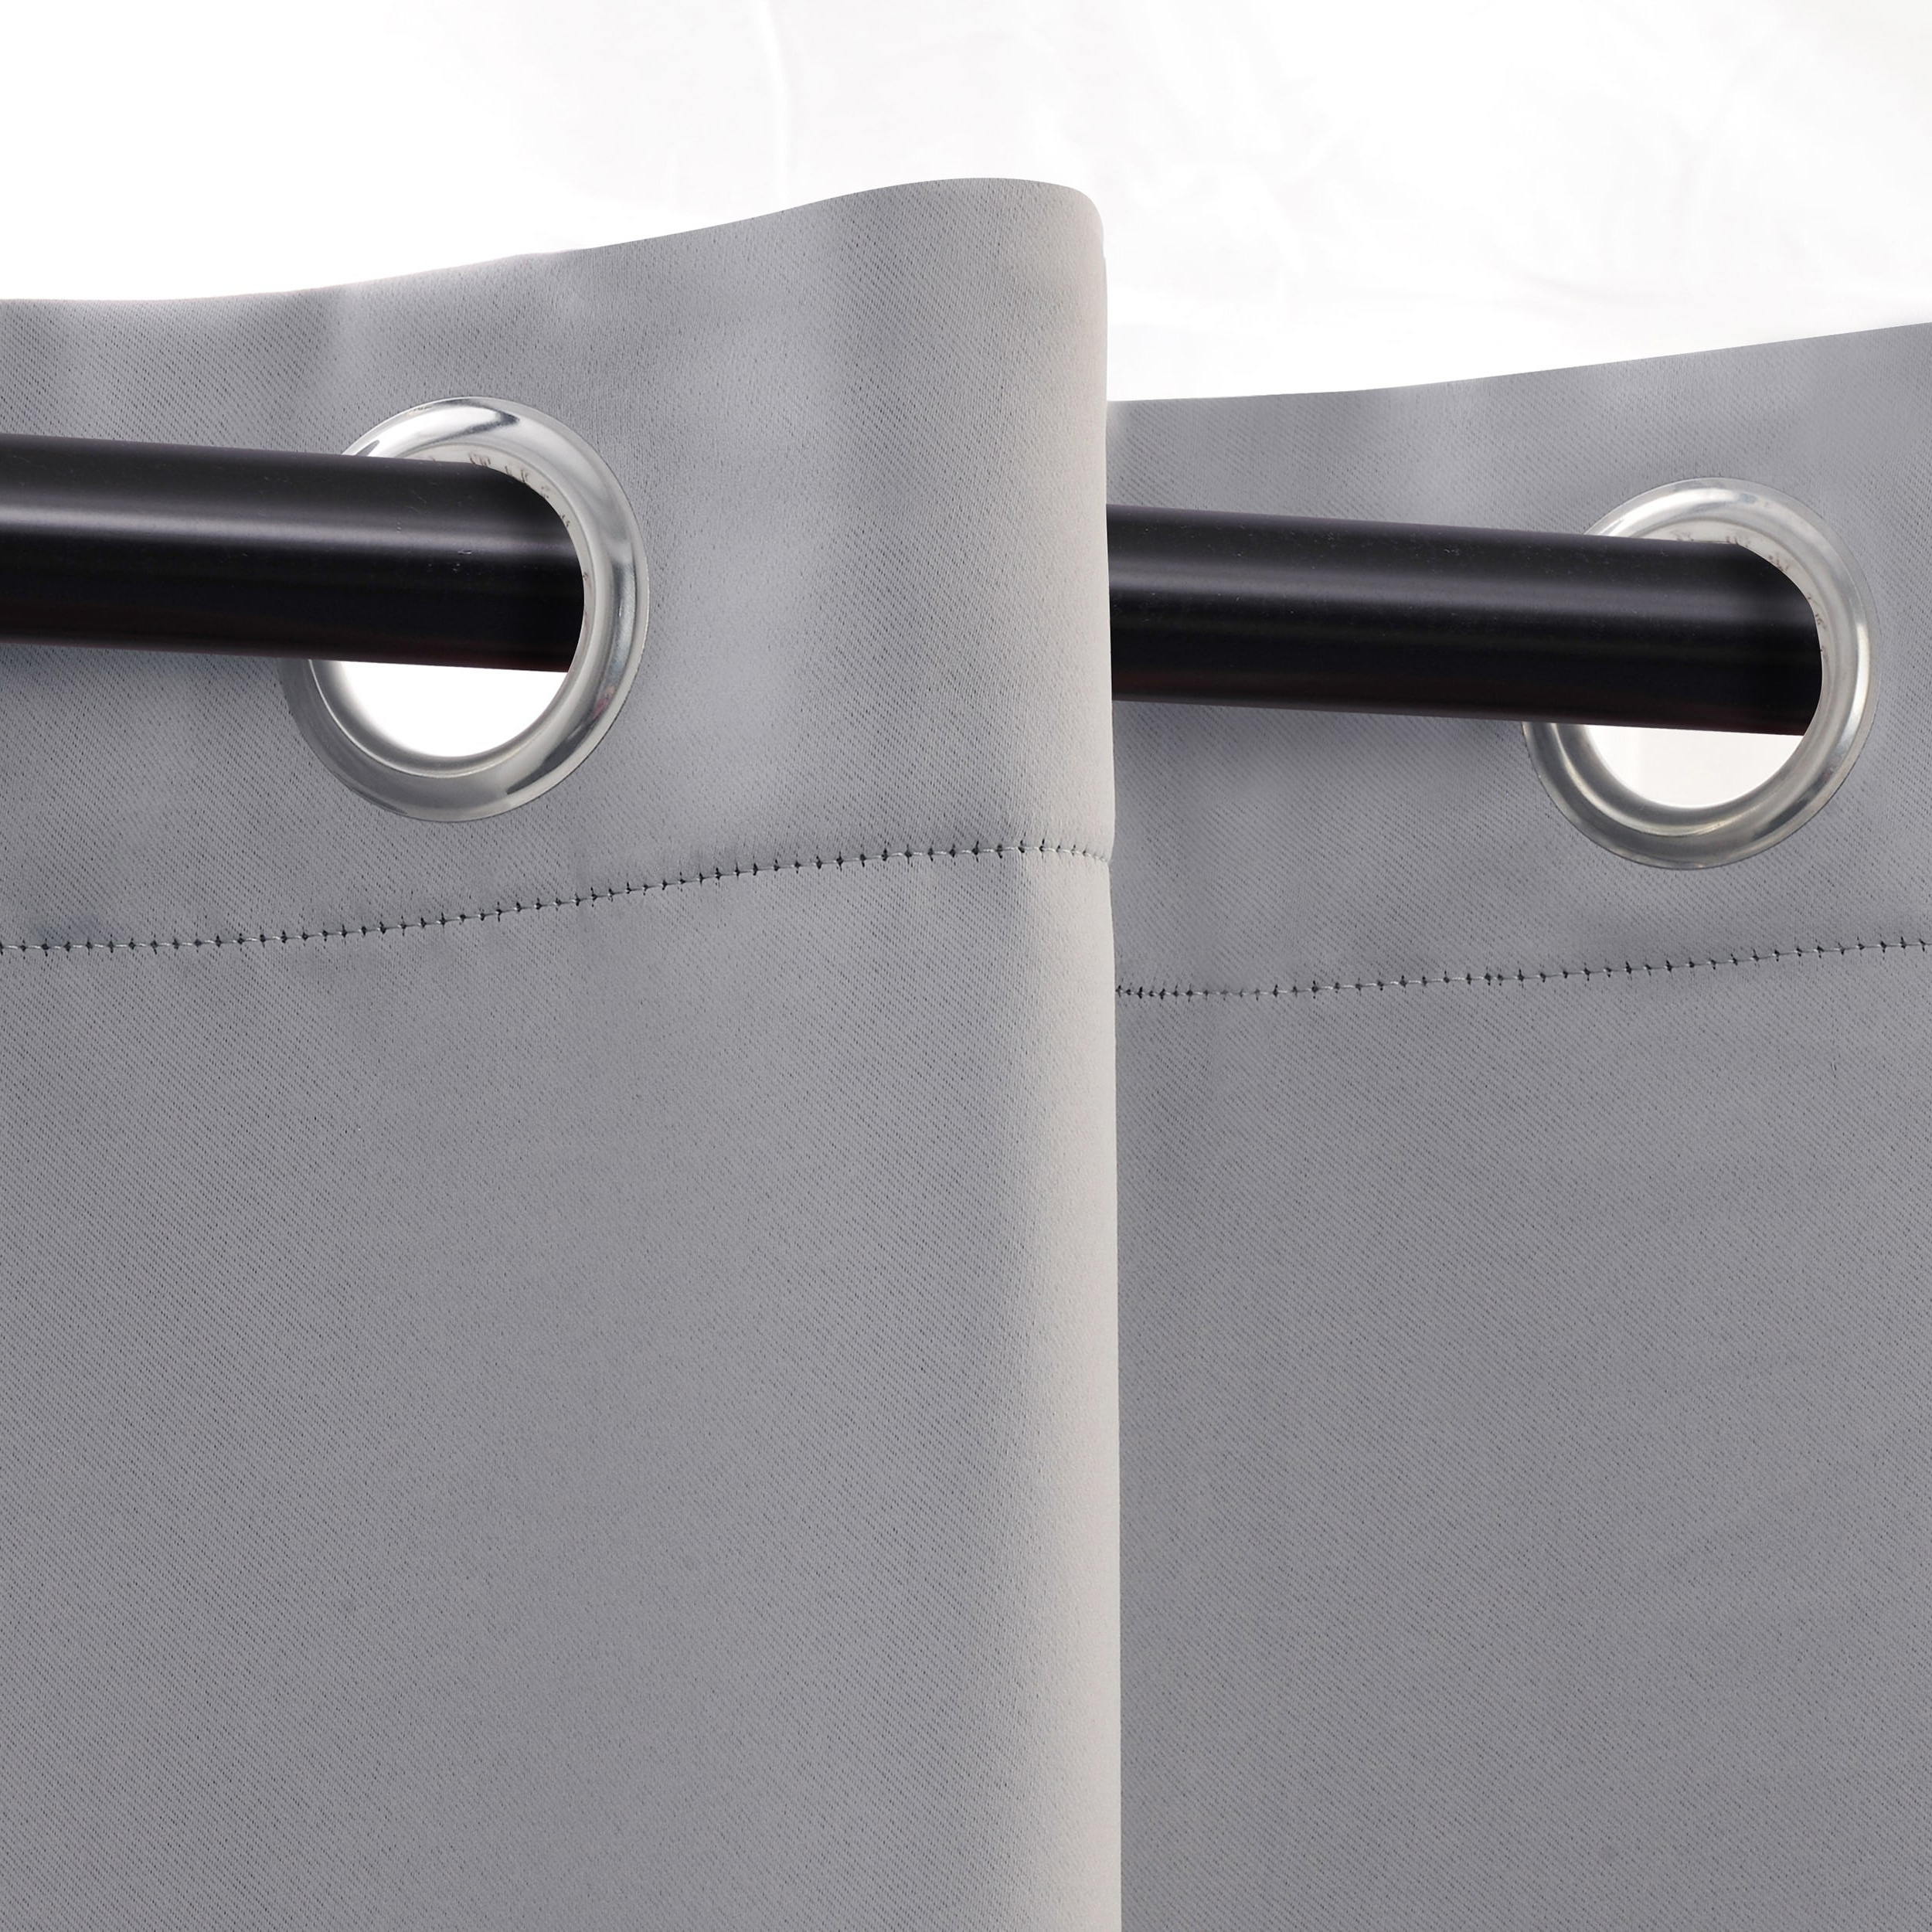 Superior Solid Insulated Thermal Blackout Grommet Curtain Panel Pair Intended For 2021 Superior Solid Insulated Thermal Blackout Grommet Curtain Panel Pairs (View 12 of 20)